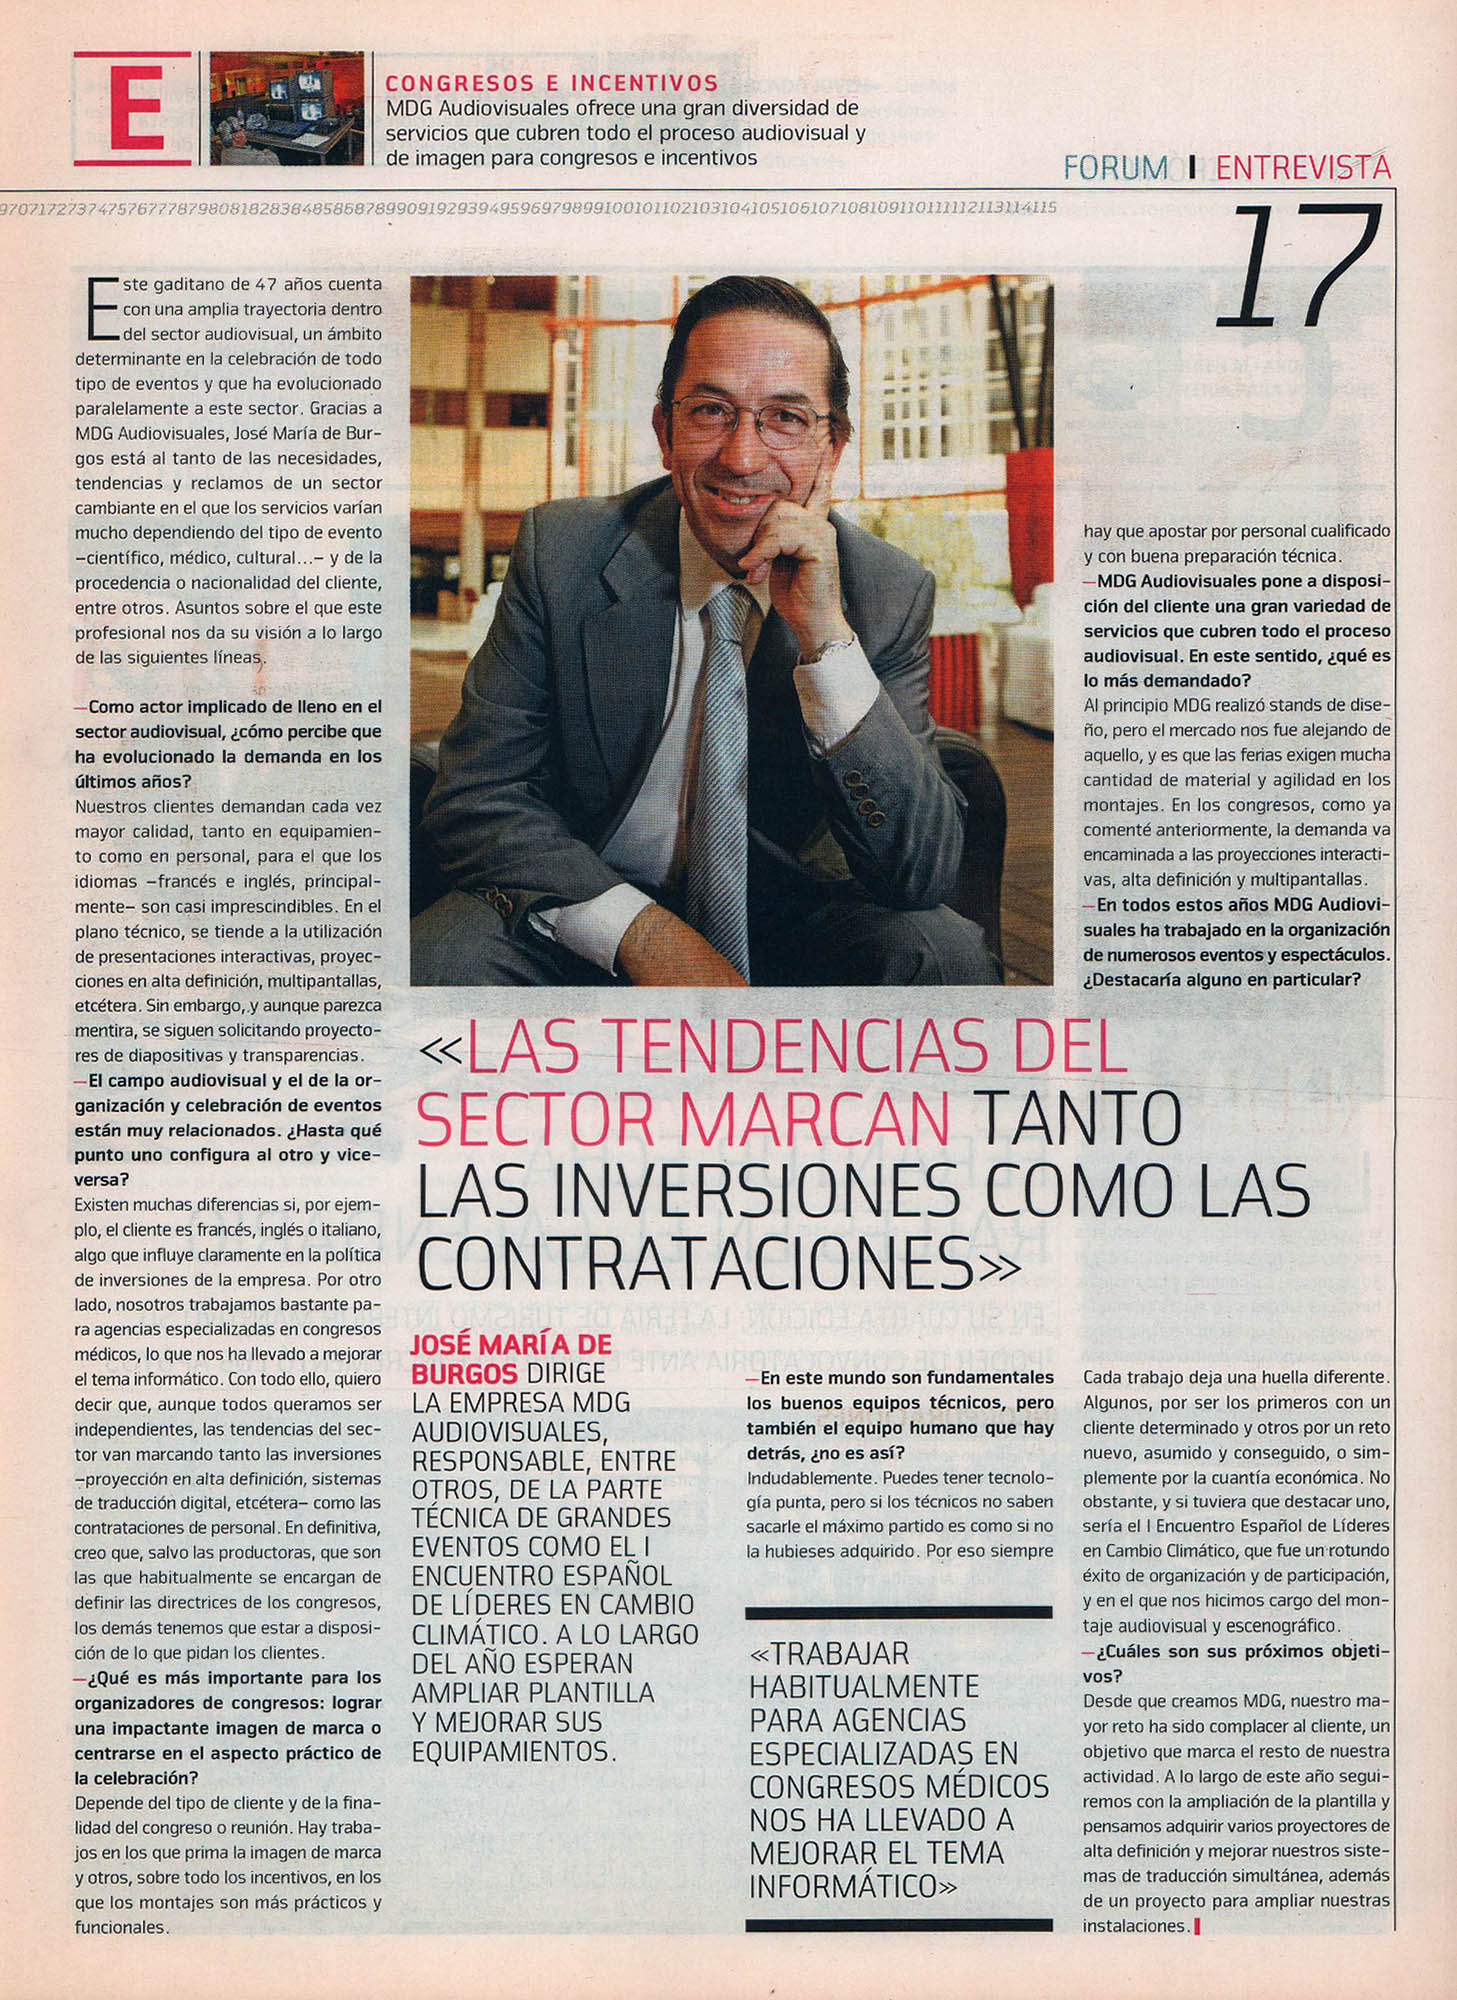 José María de Burgos, MDG Audiovisuales | Fórum - ABC de Sevilla | may 2008